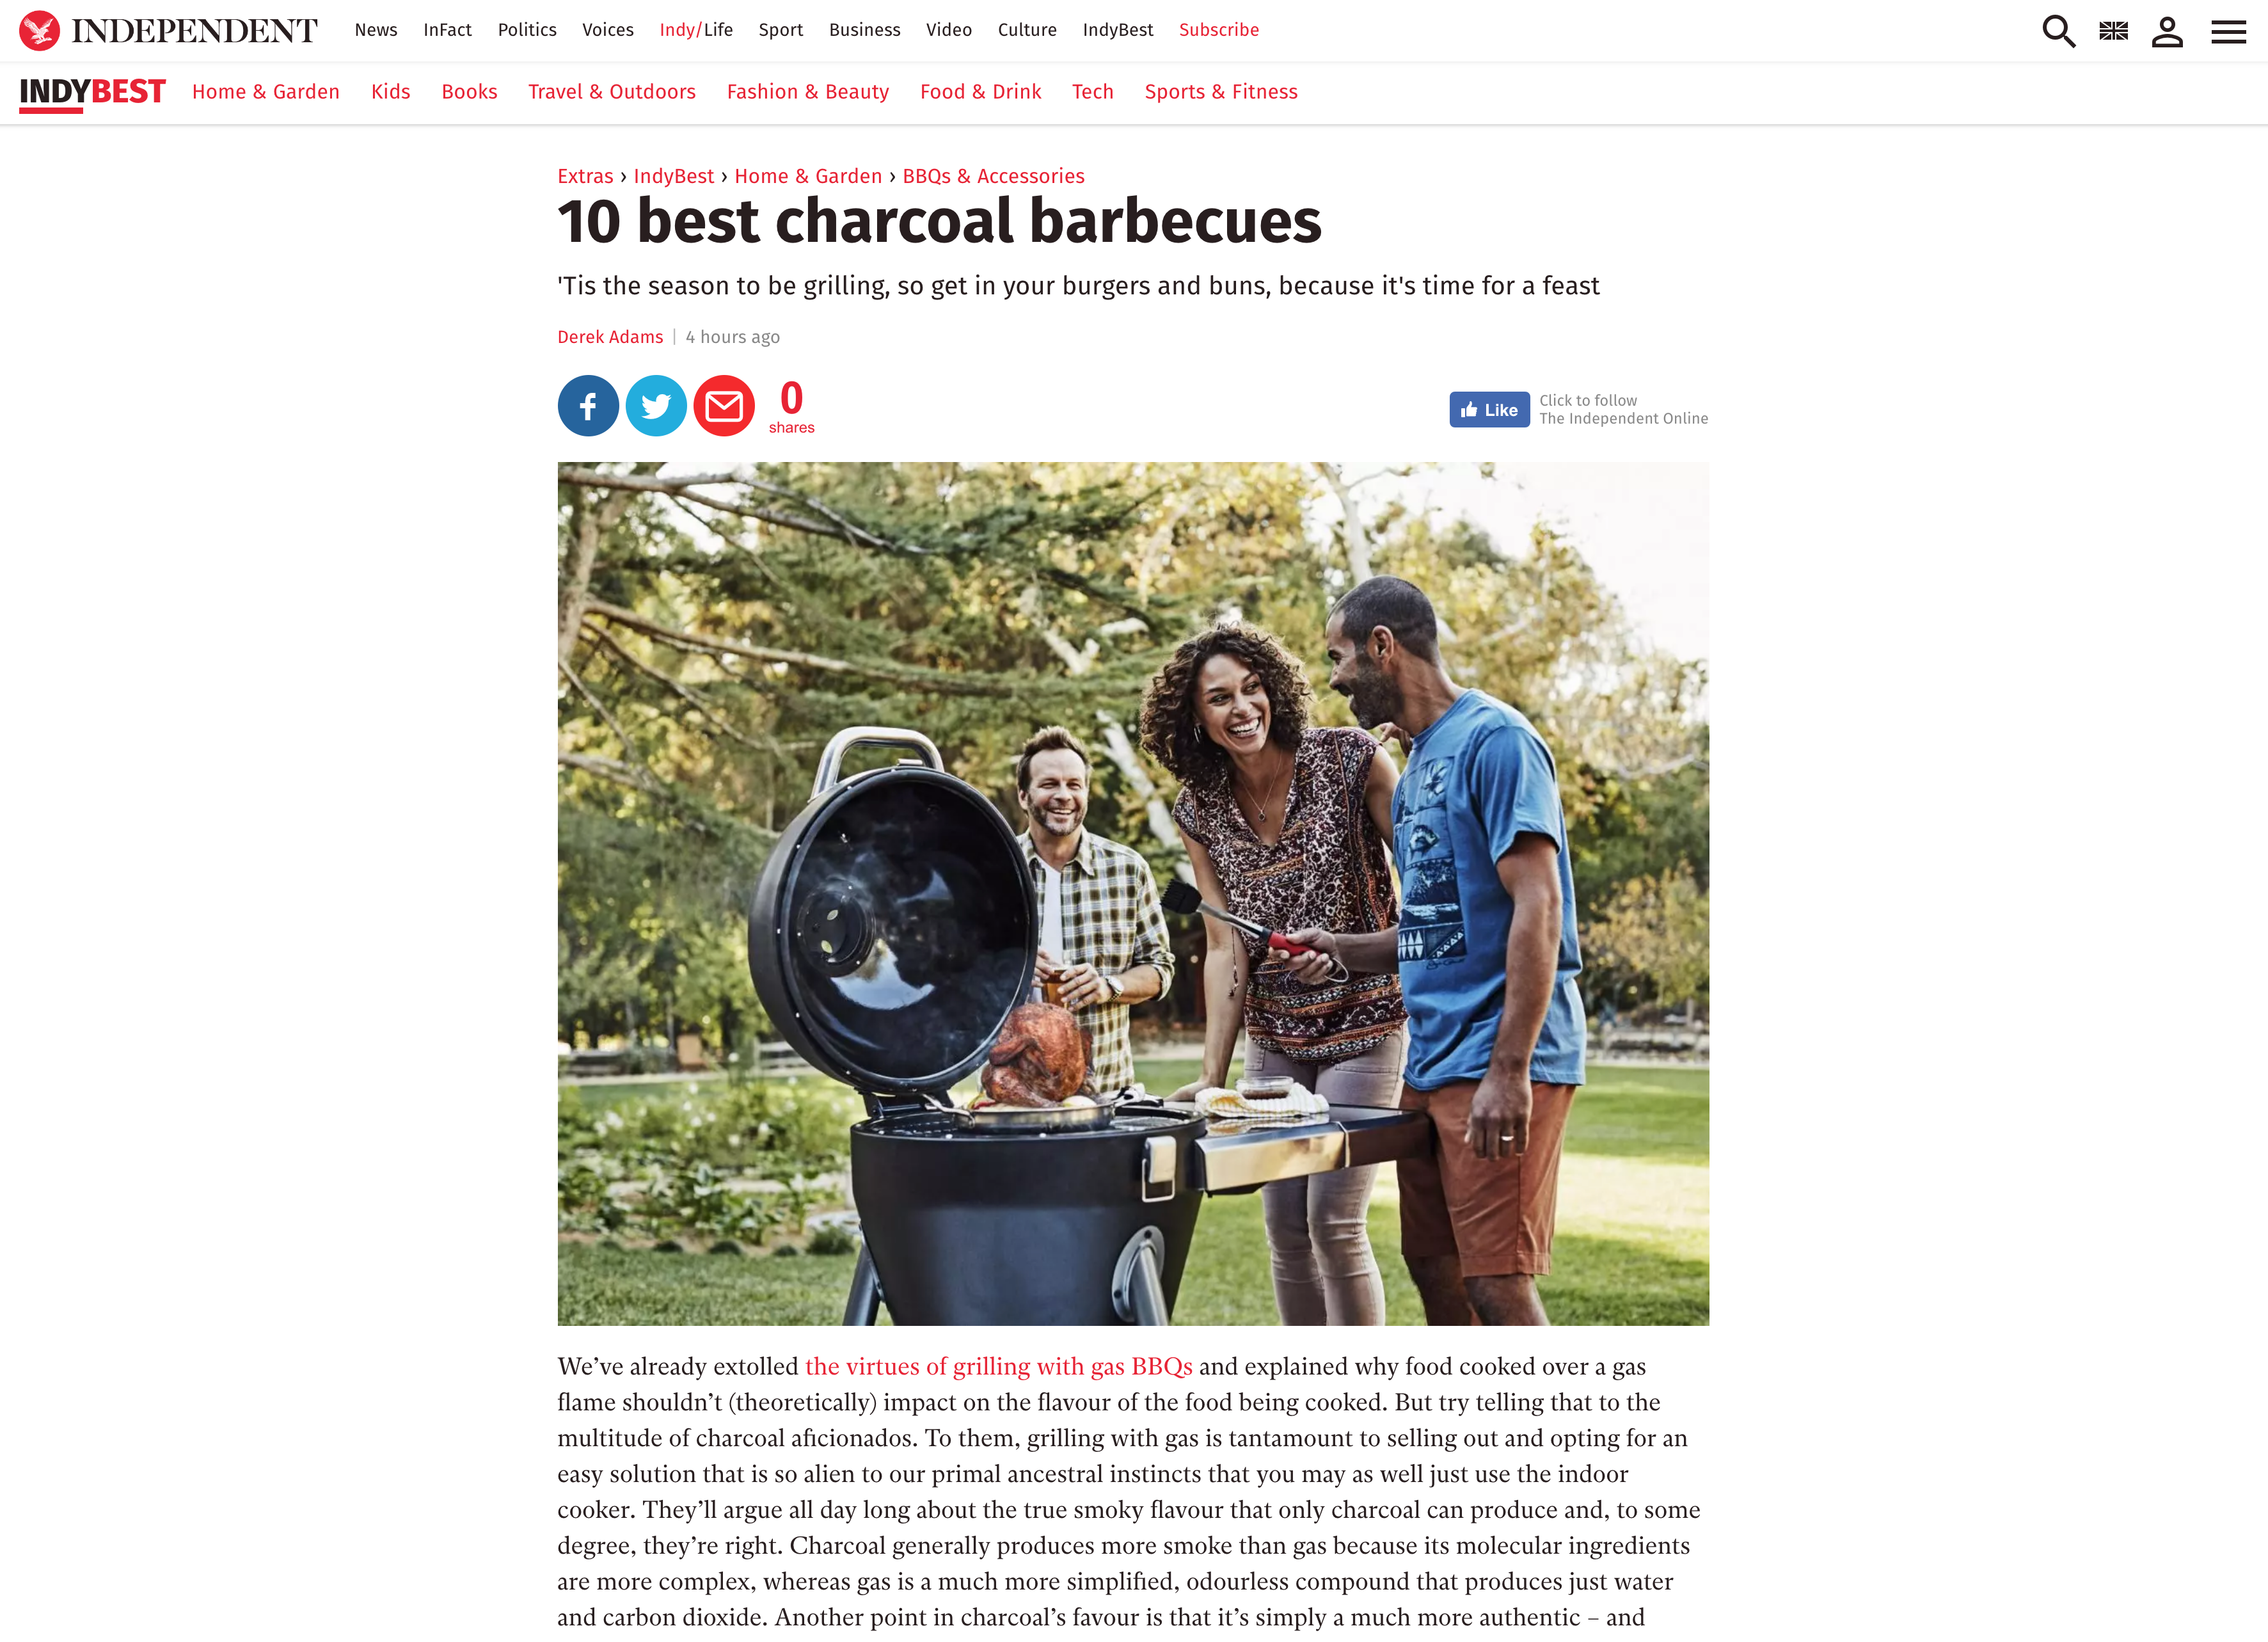 LARGE CHARCOAL BARBECUES